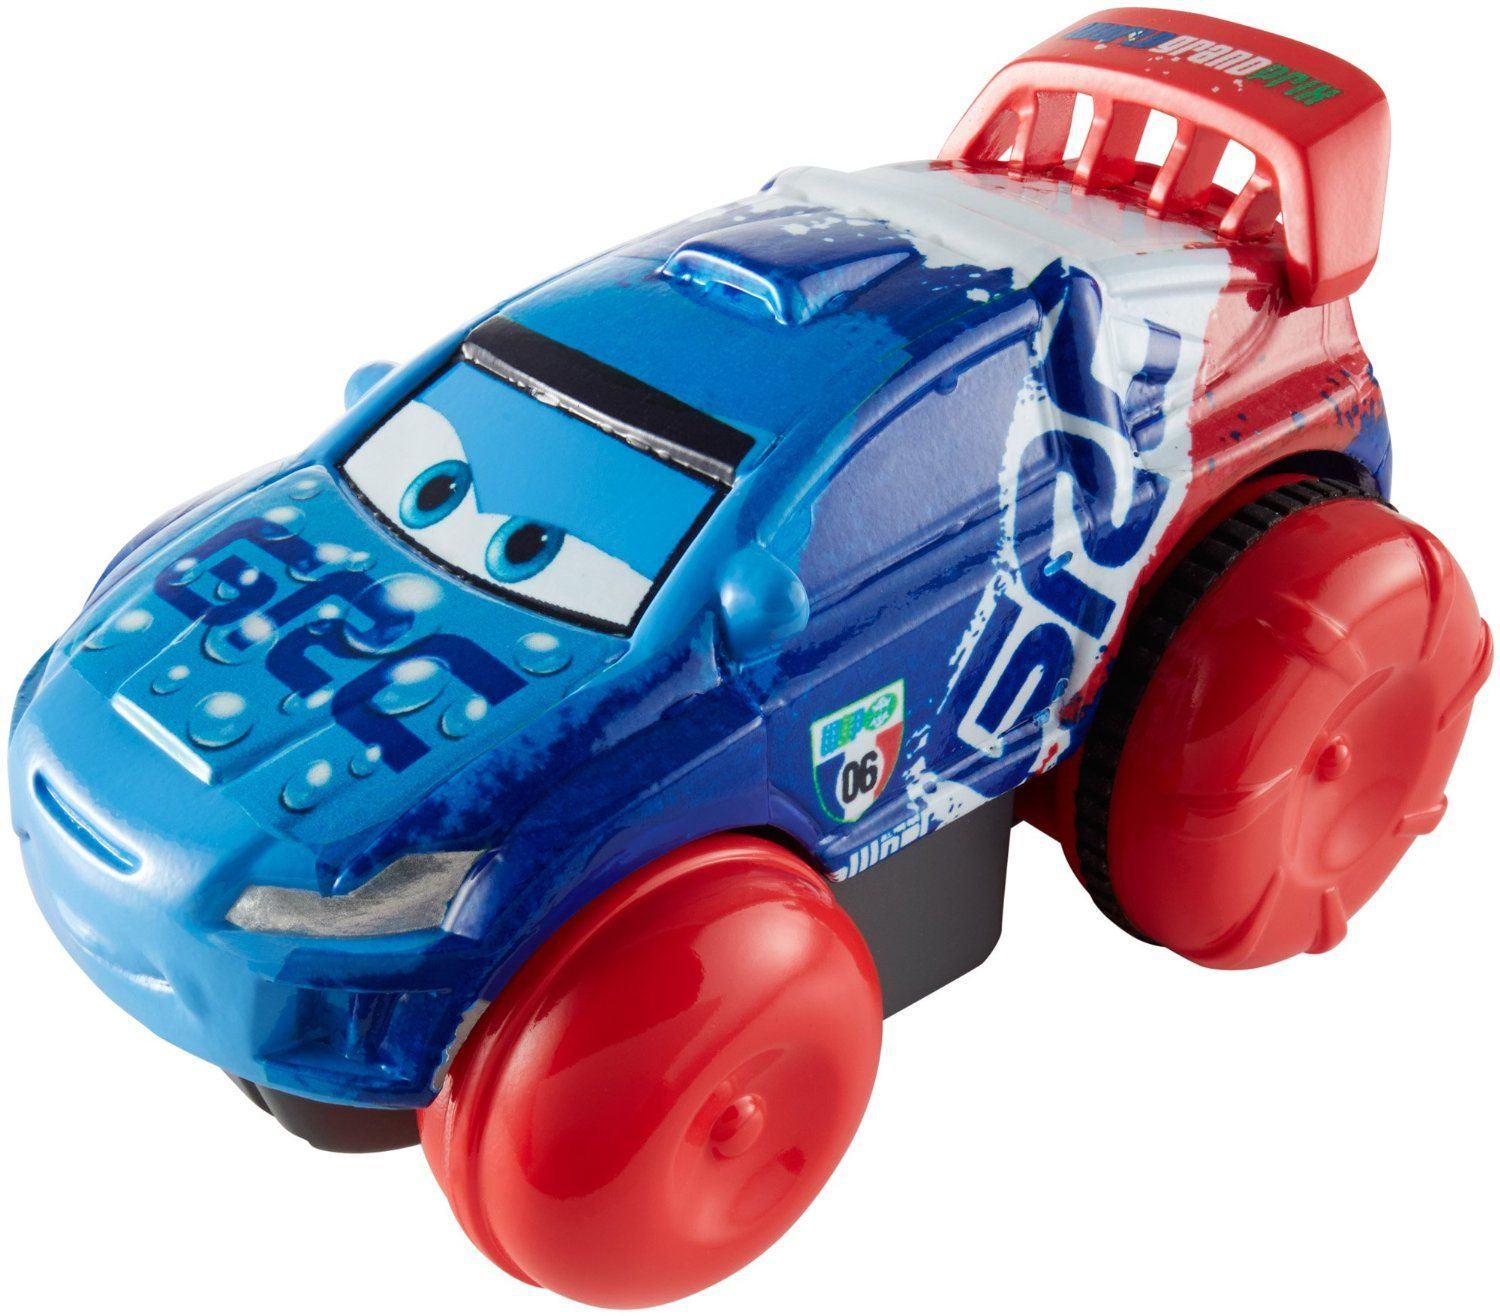 Amazon Disney Pixar Cars Bath toy $2 97 Amazon Prime LavaHot